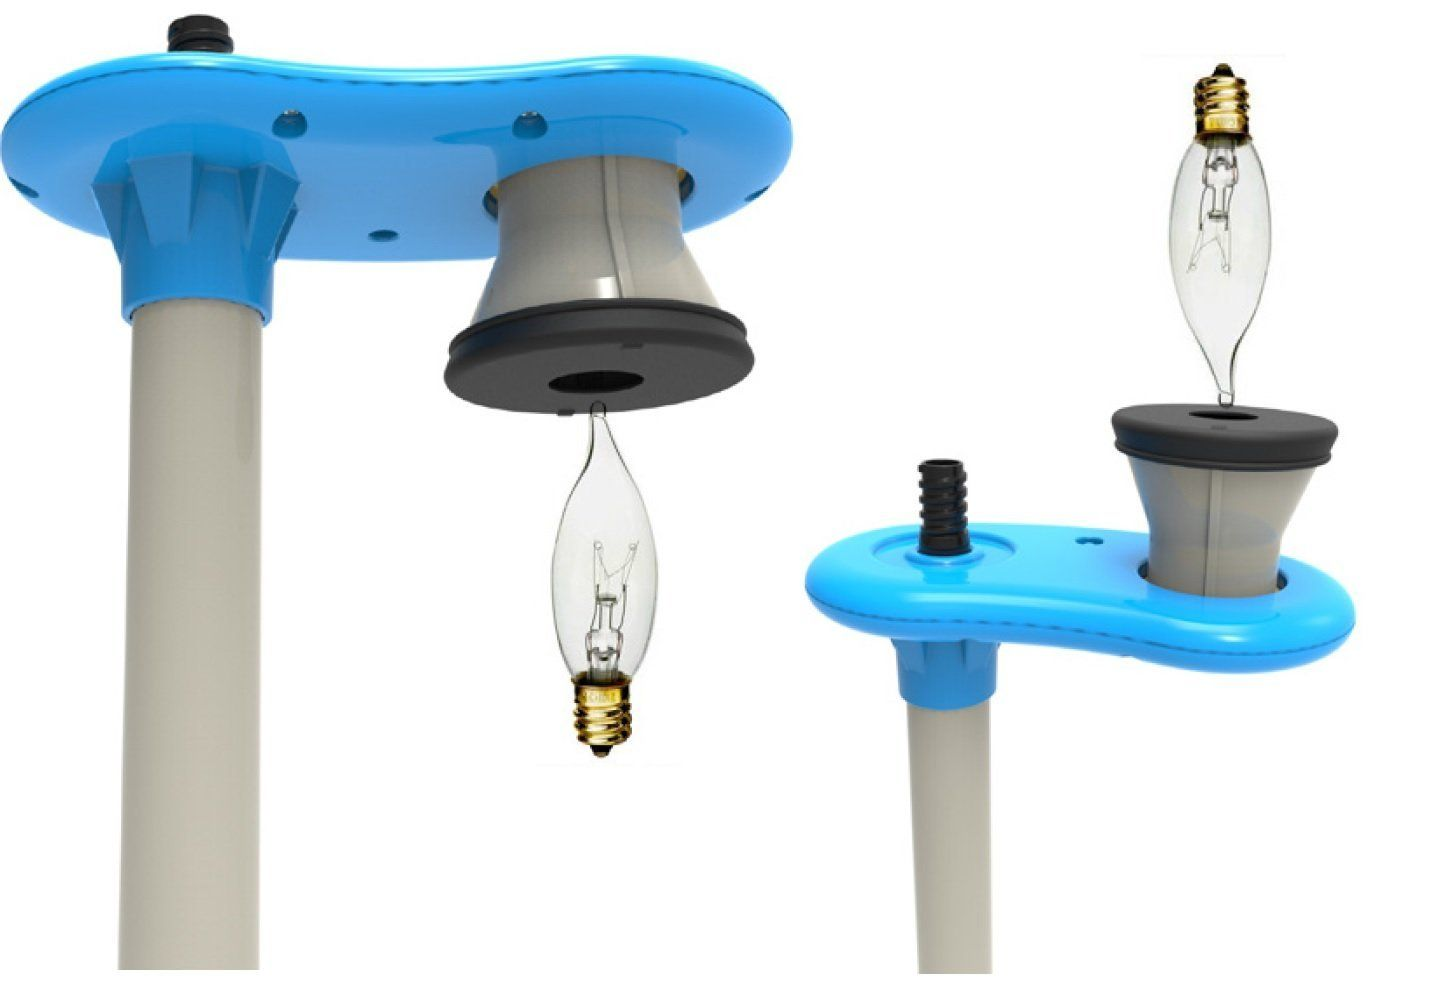 The Highlight Bulb Changer Pole Changes Upward And Downward Facing Bulbs In Hard To Reach Places 6 Feet Of Extension Patent Bulb Chandelier Ceiling Fixtures